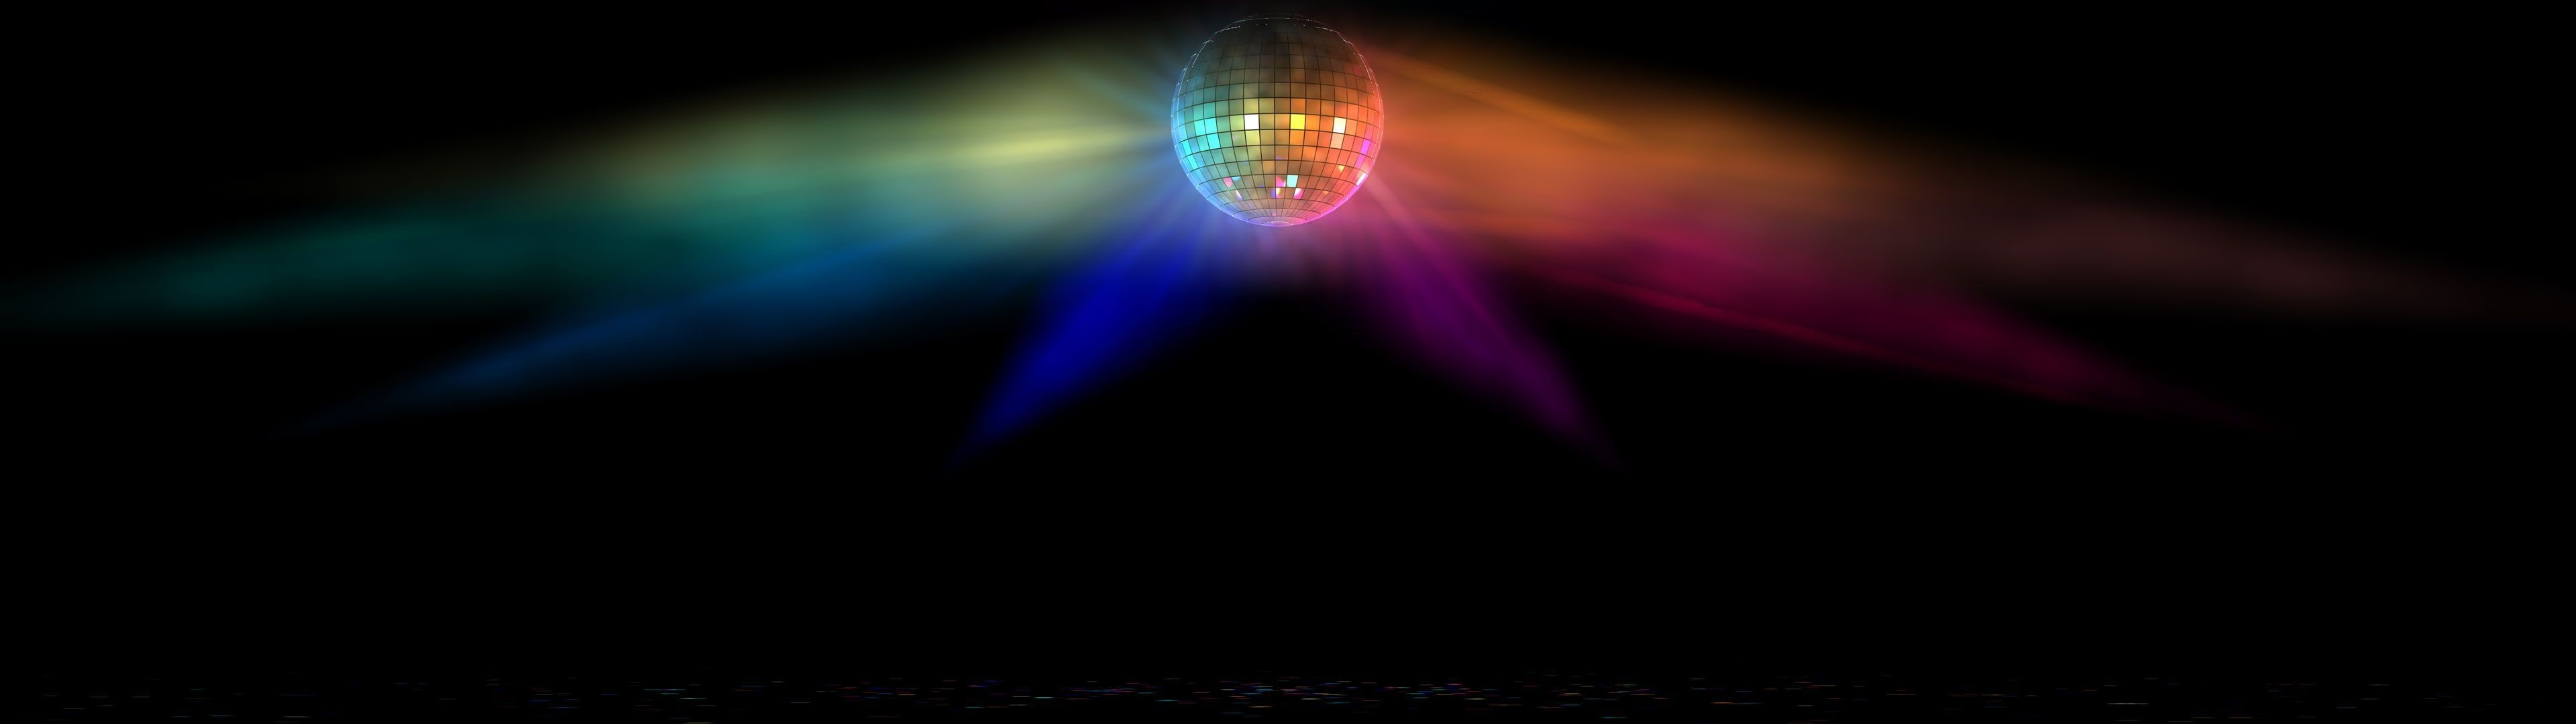 Disco Background Download Free Cool High Resolution HD Wallpapers Download Free Images Wallpaper [1000image.com]